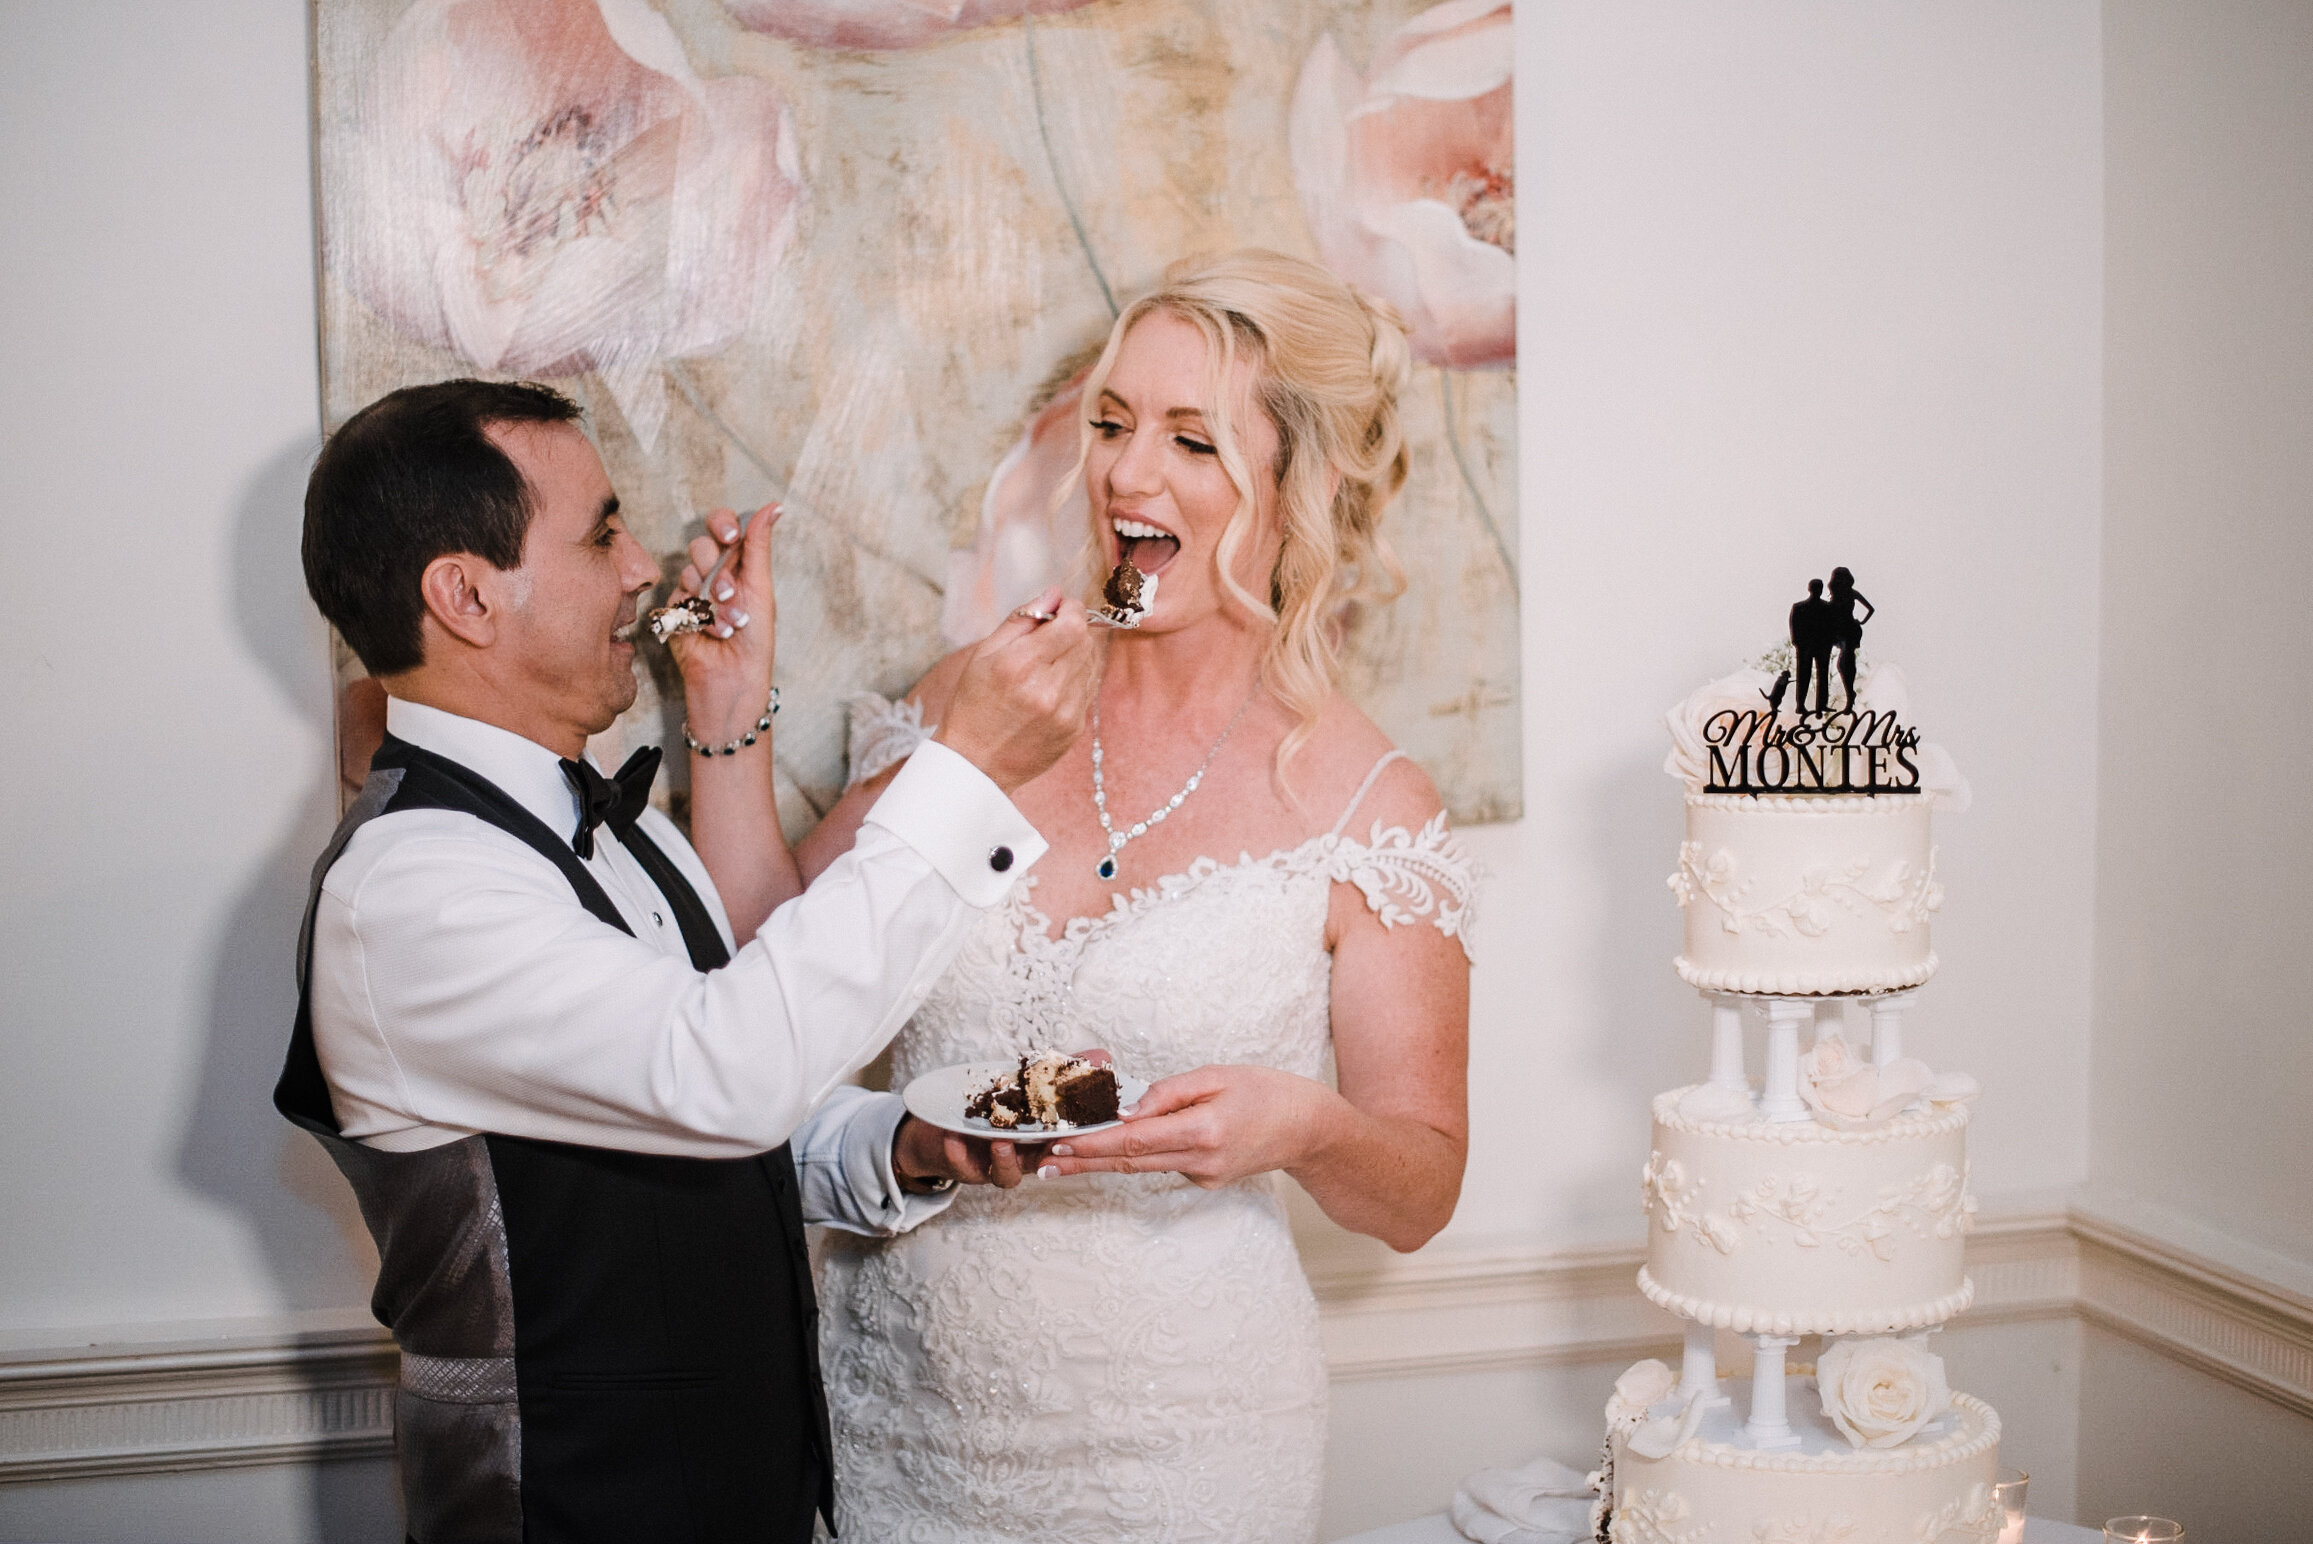 bride and groom eating cake at reception at Rust Manor House